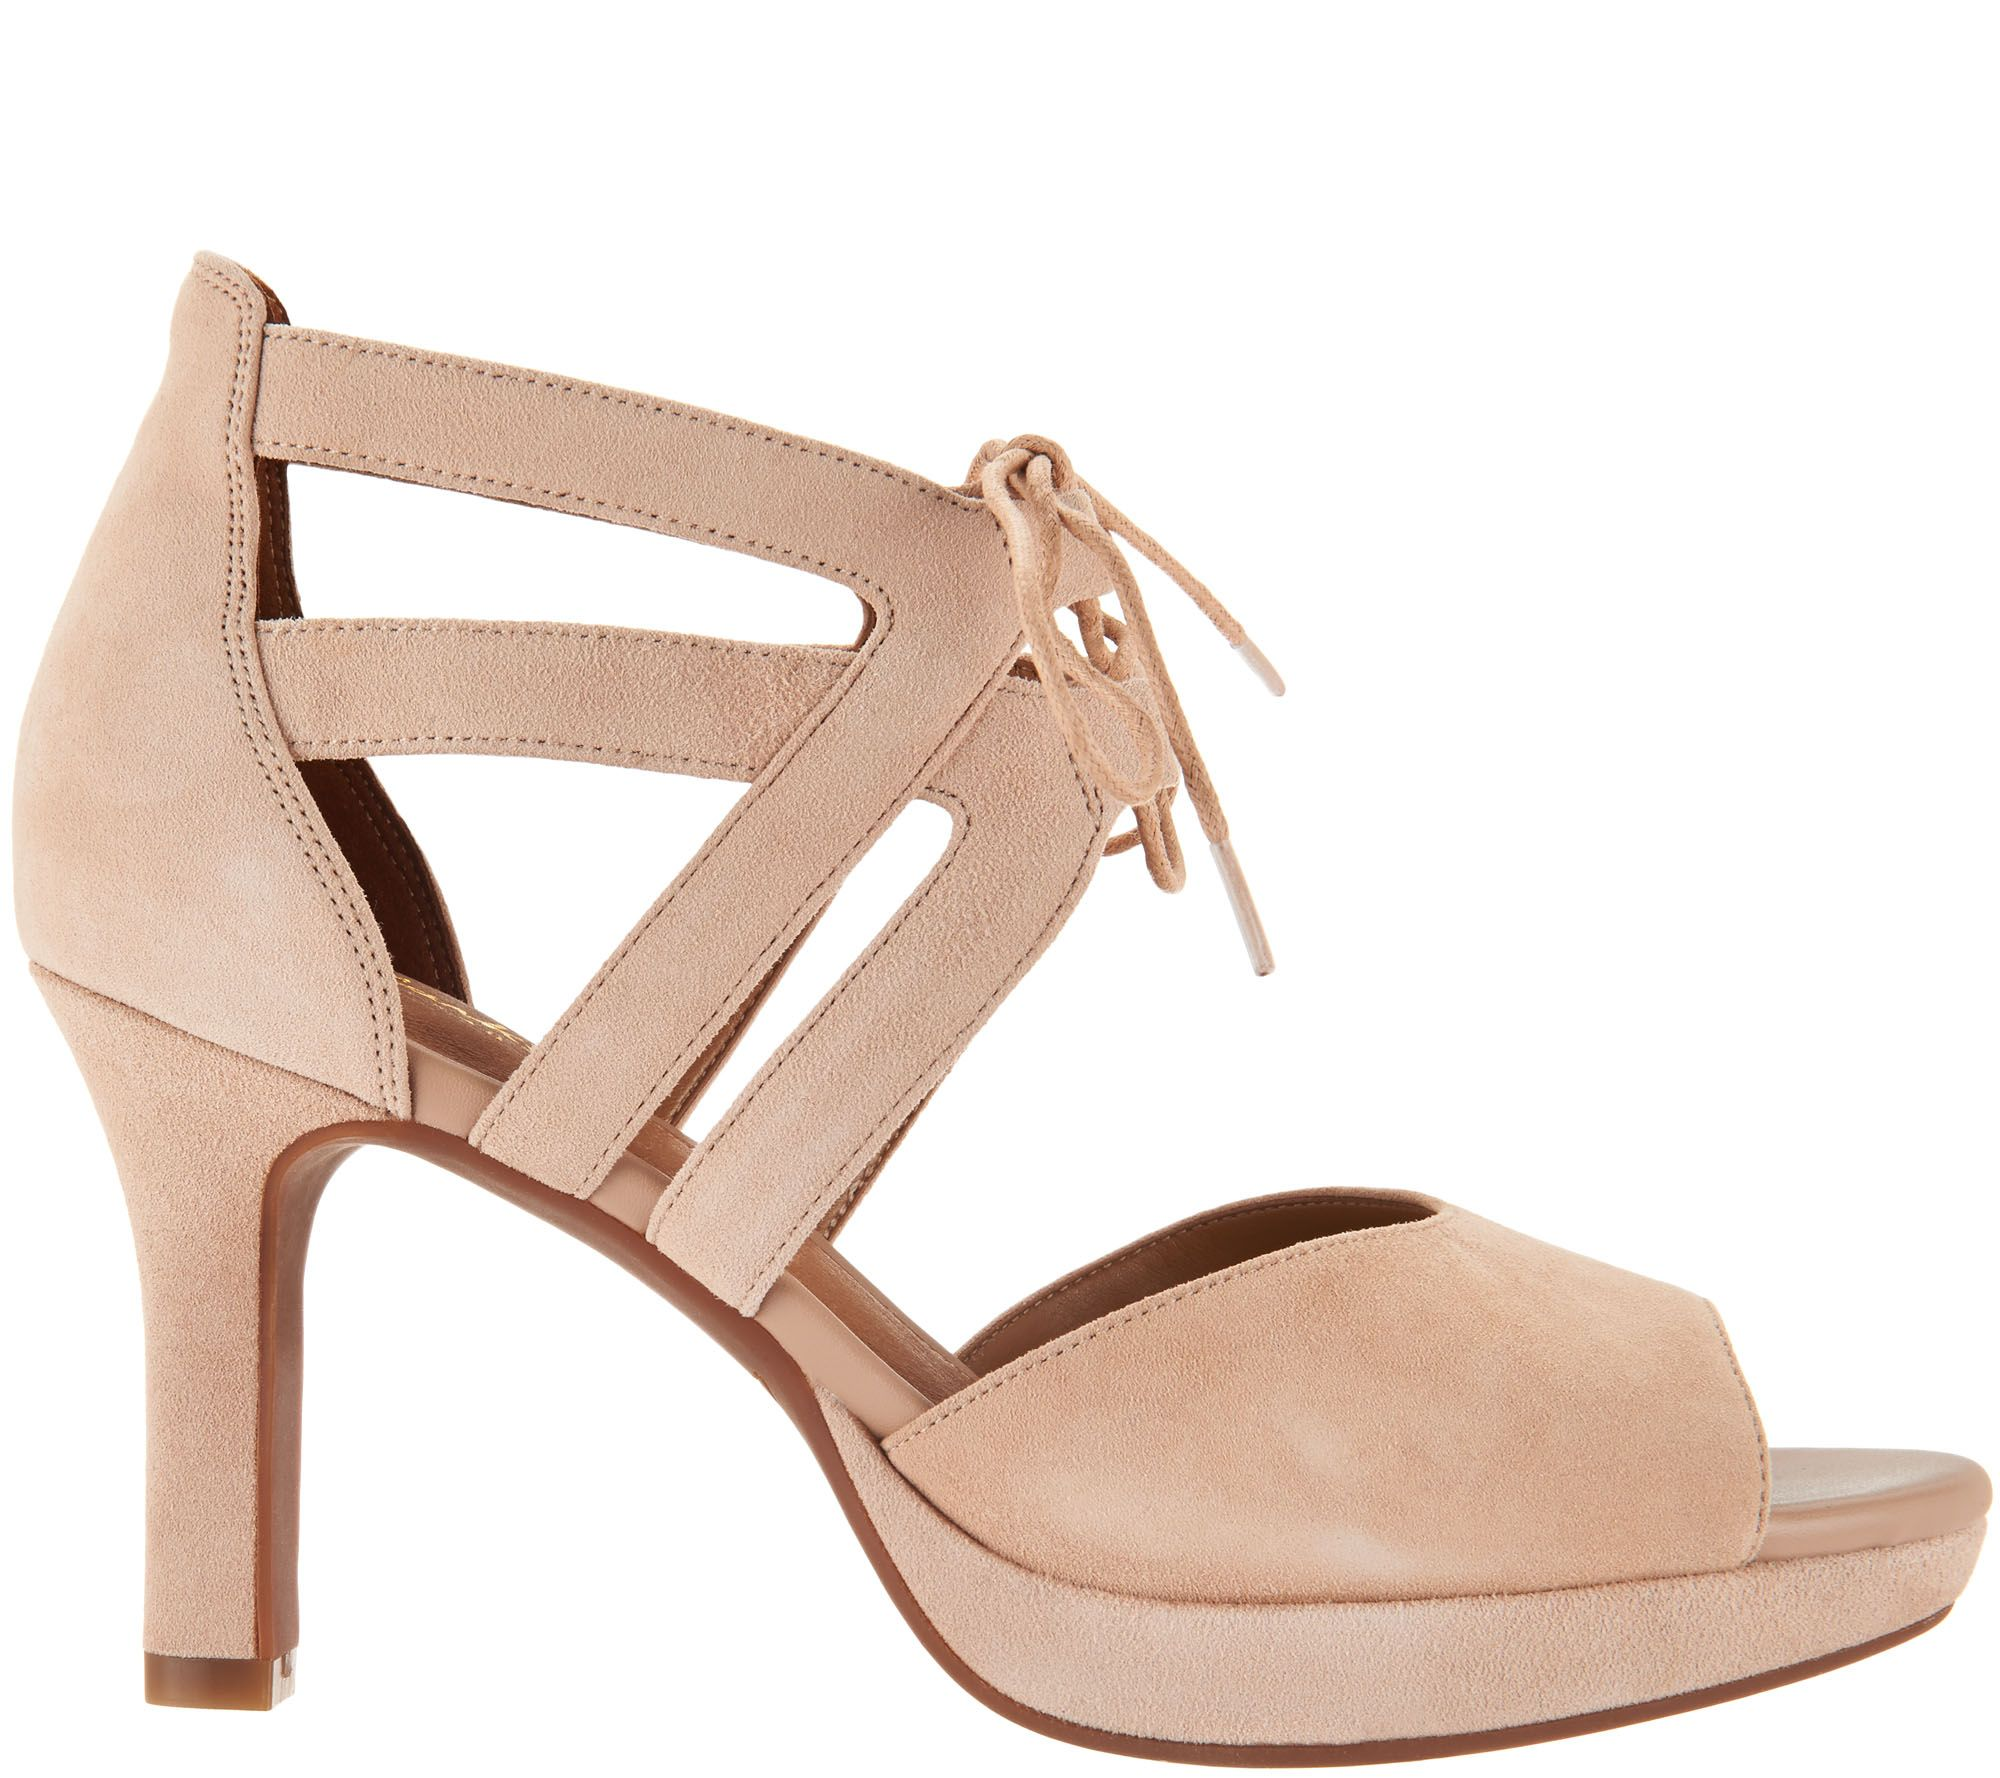 db1e3851f1d Clarks Artisan Suede Heeled Sandals w  Tie Detail - Mayra Ellie - Page 1 —  QVC.com